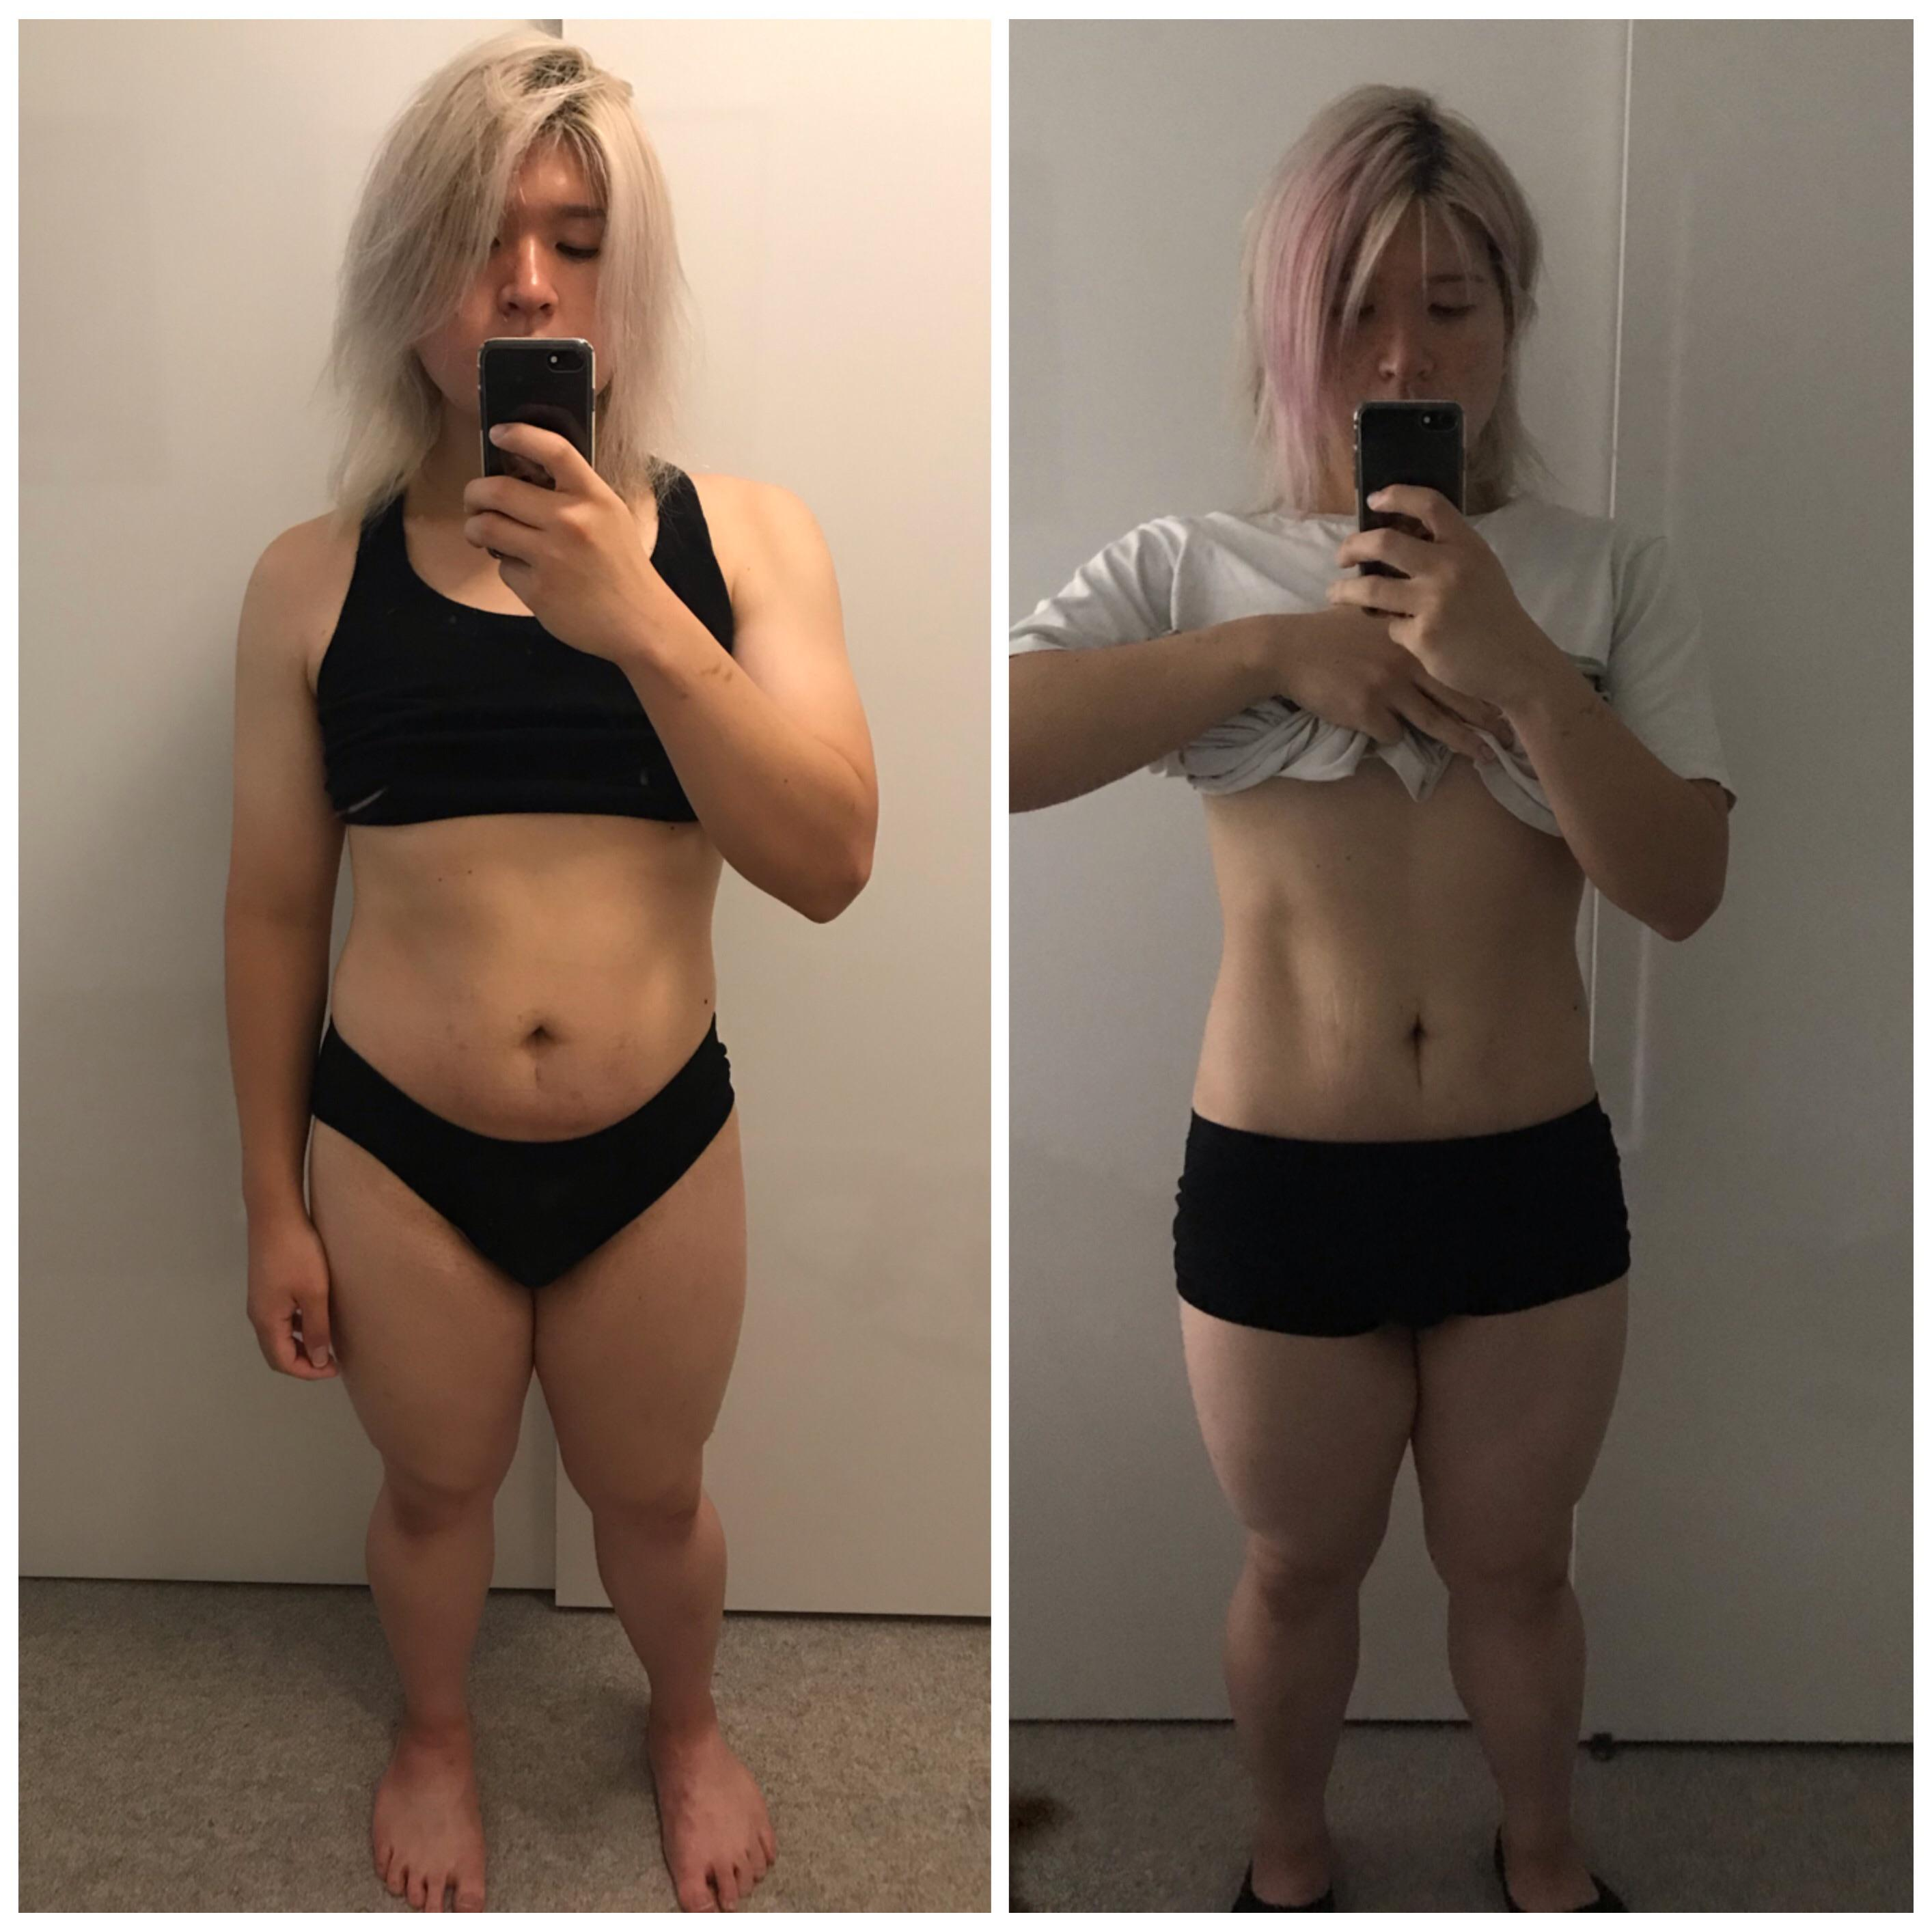 5 feet 3 Female 15 lbs Fat Loss Before and After 177 lbs to 162 lbs